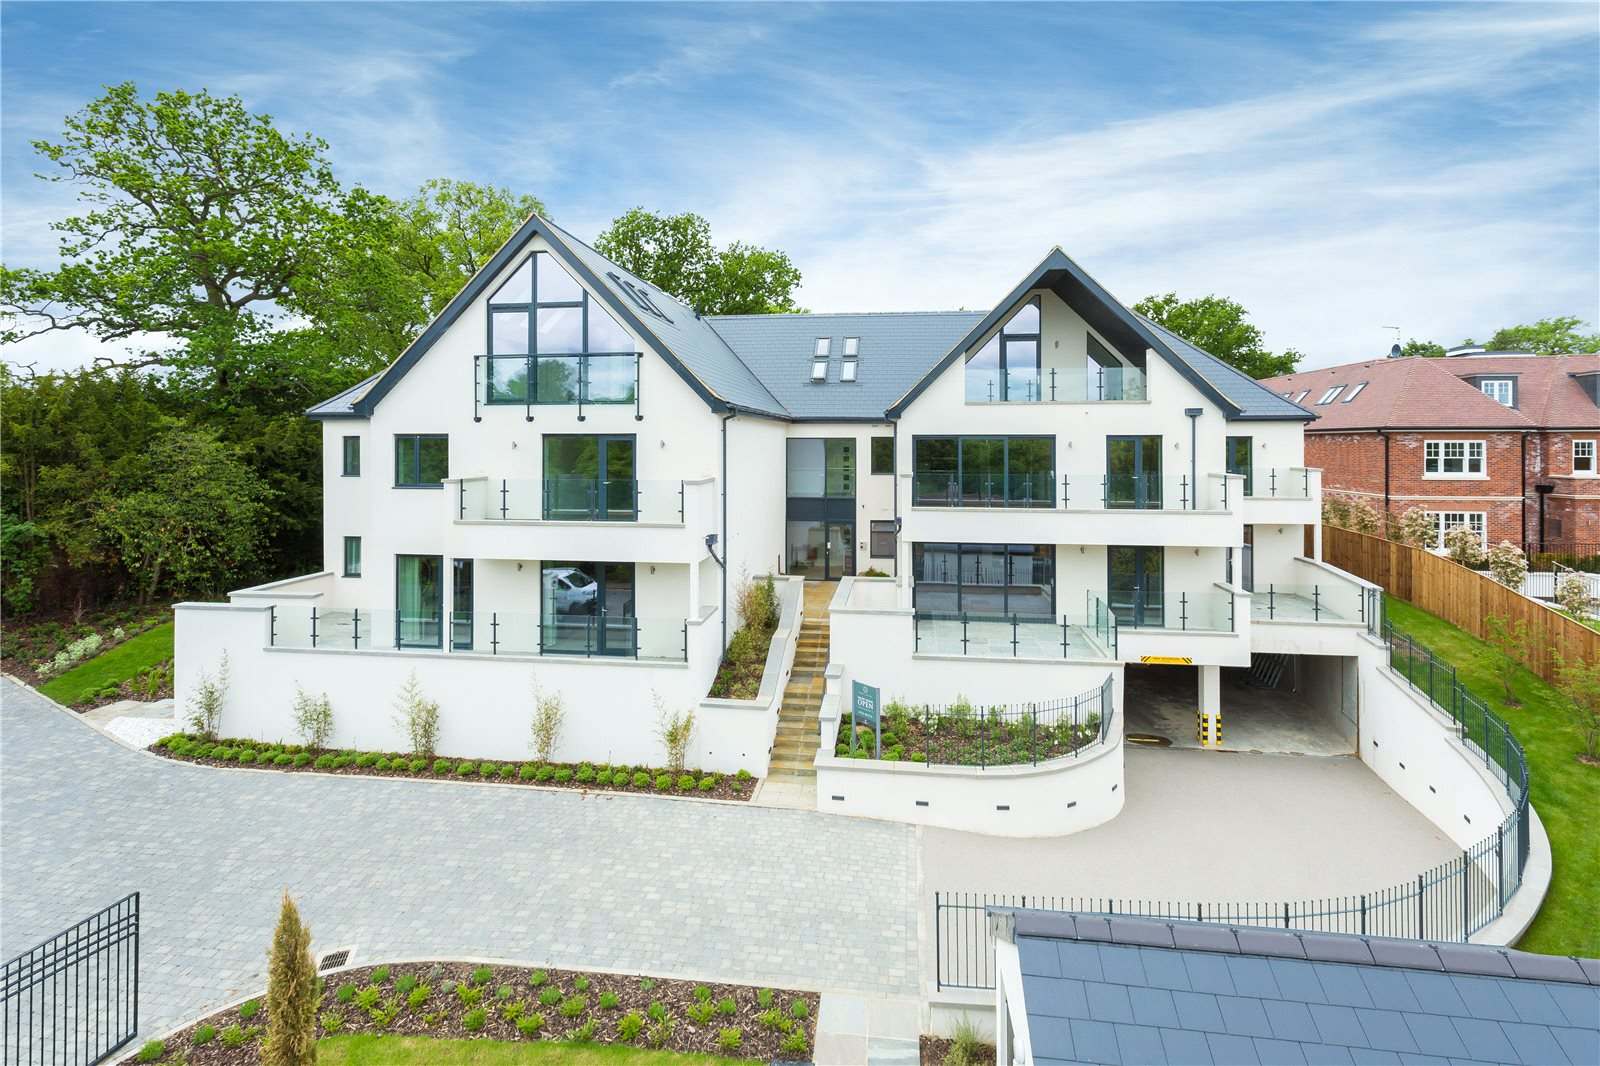 集合住宅 のために 売買 アット South Park Crescent, Gerrards Cross, Buckinghamshire, SL9 Gerrards Cross, イギリス